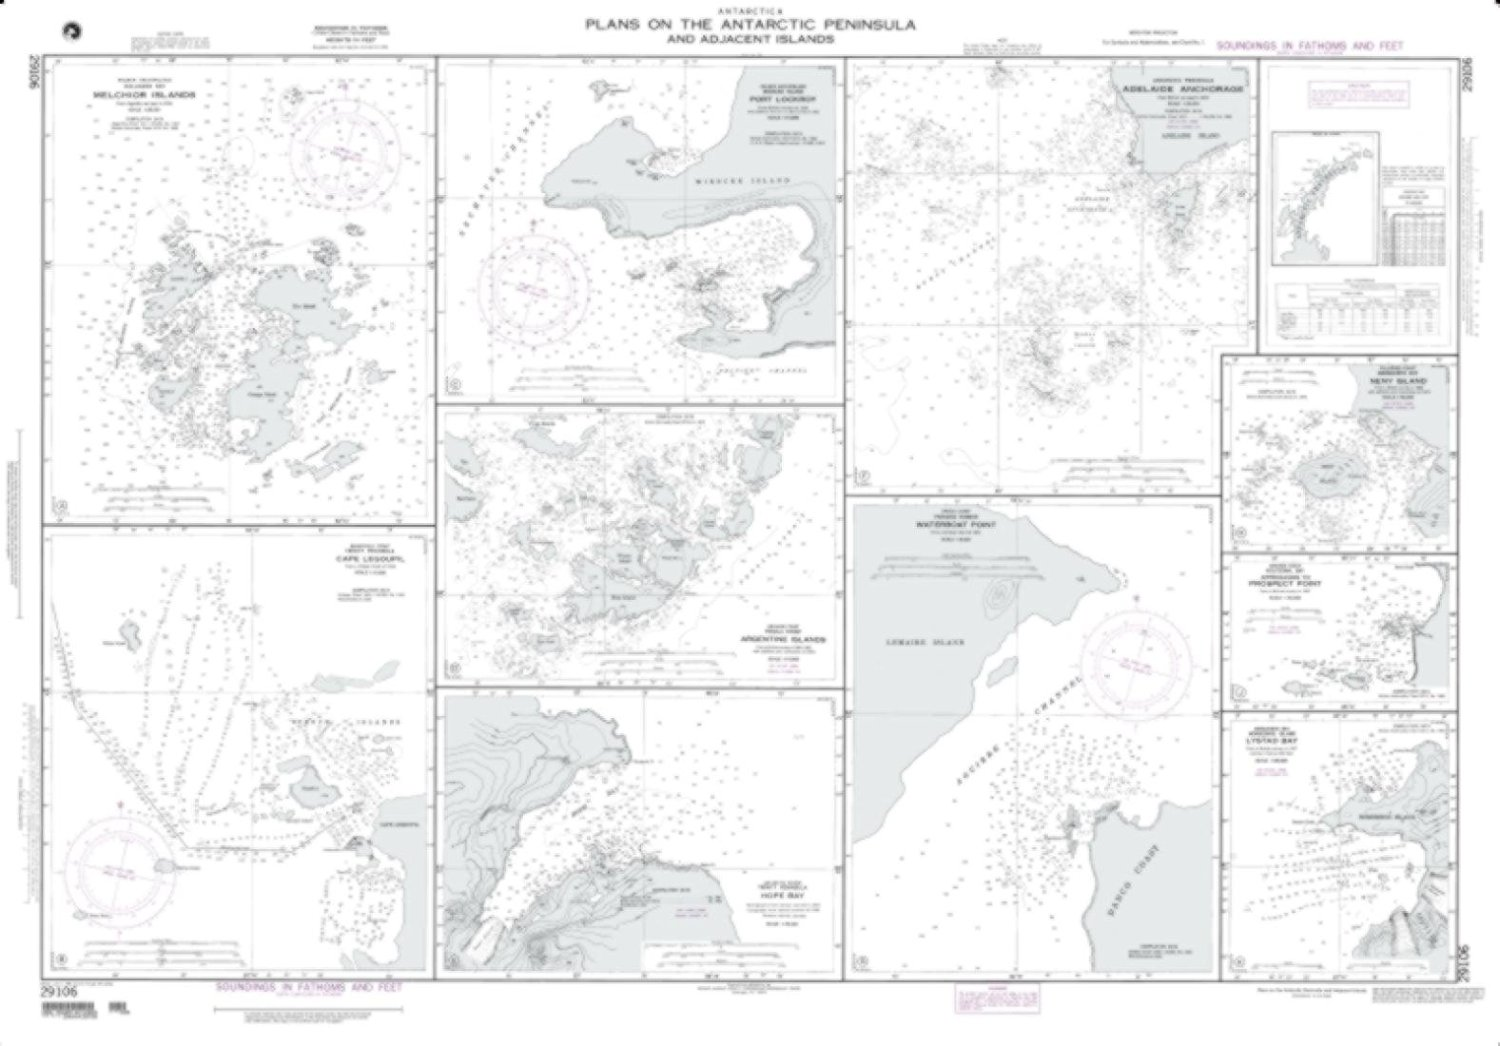 NGA Chart 29106-Plans On Antarctic Peninsula And Adjacent Islands; Plan F: Adelaide Anchorage